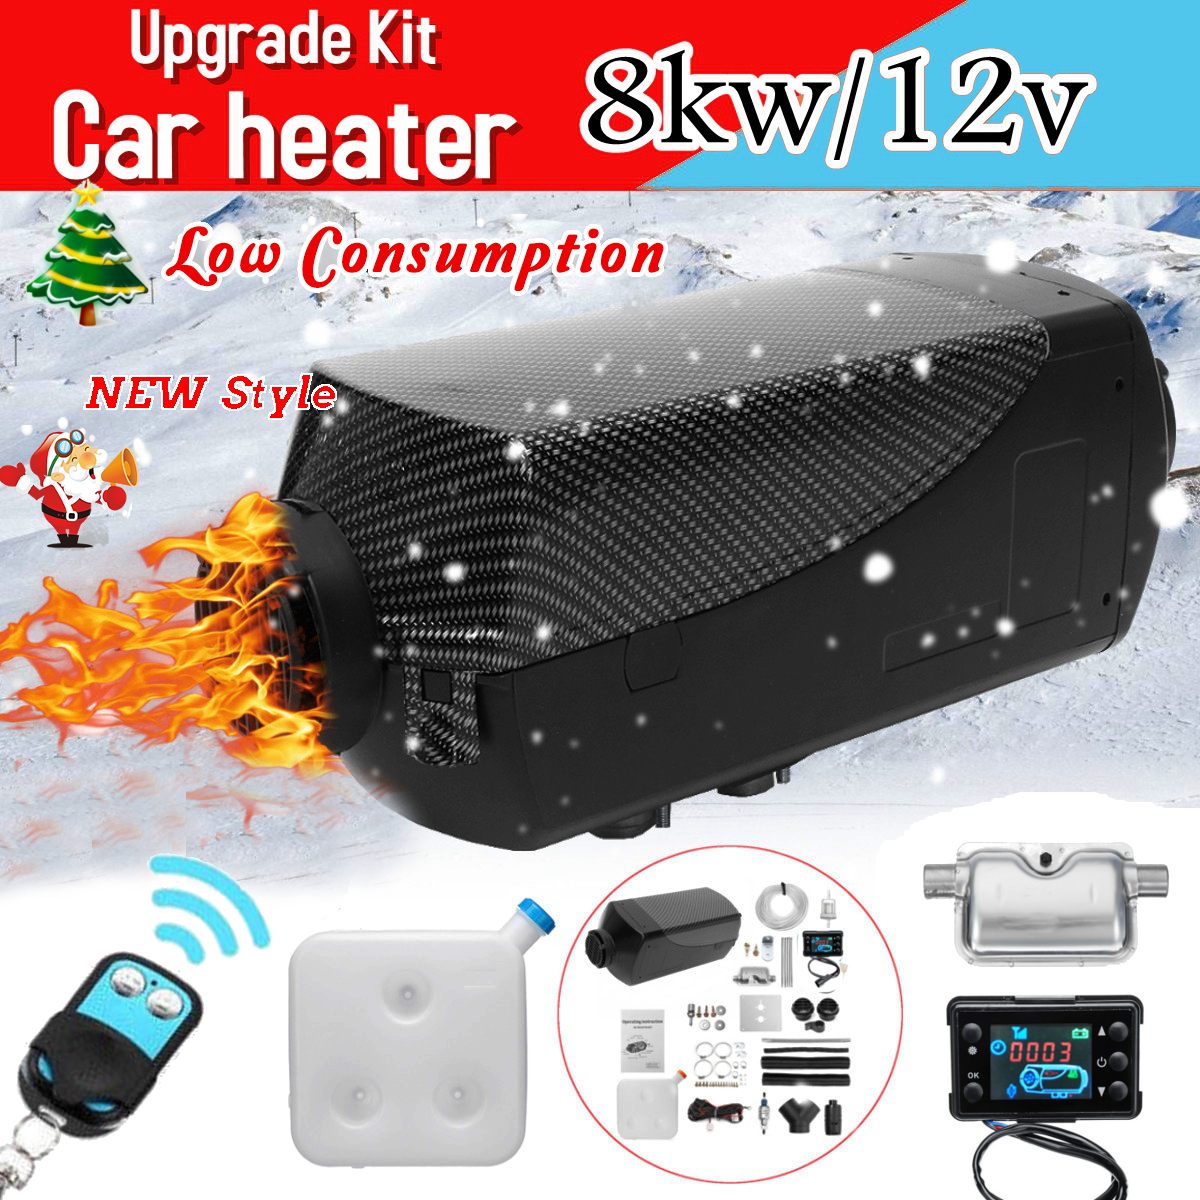 12V 8000W LCD Monitor Air diesels Fuel Heater Single Hole 8KW For Boat Bus Car Heater With Remote Control and Silencer For free 3phase 10hp r407c compressor 36 8kw heating capacity specially designed for hotel and resturant water heater